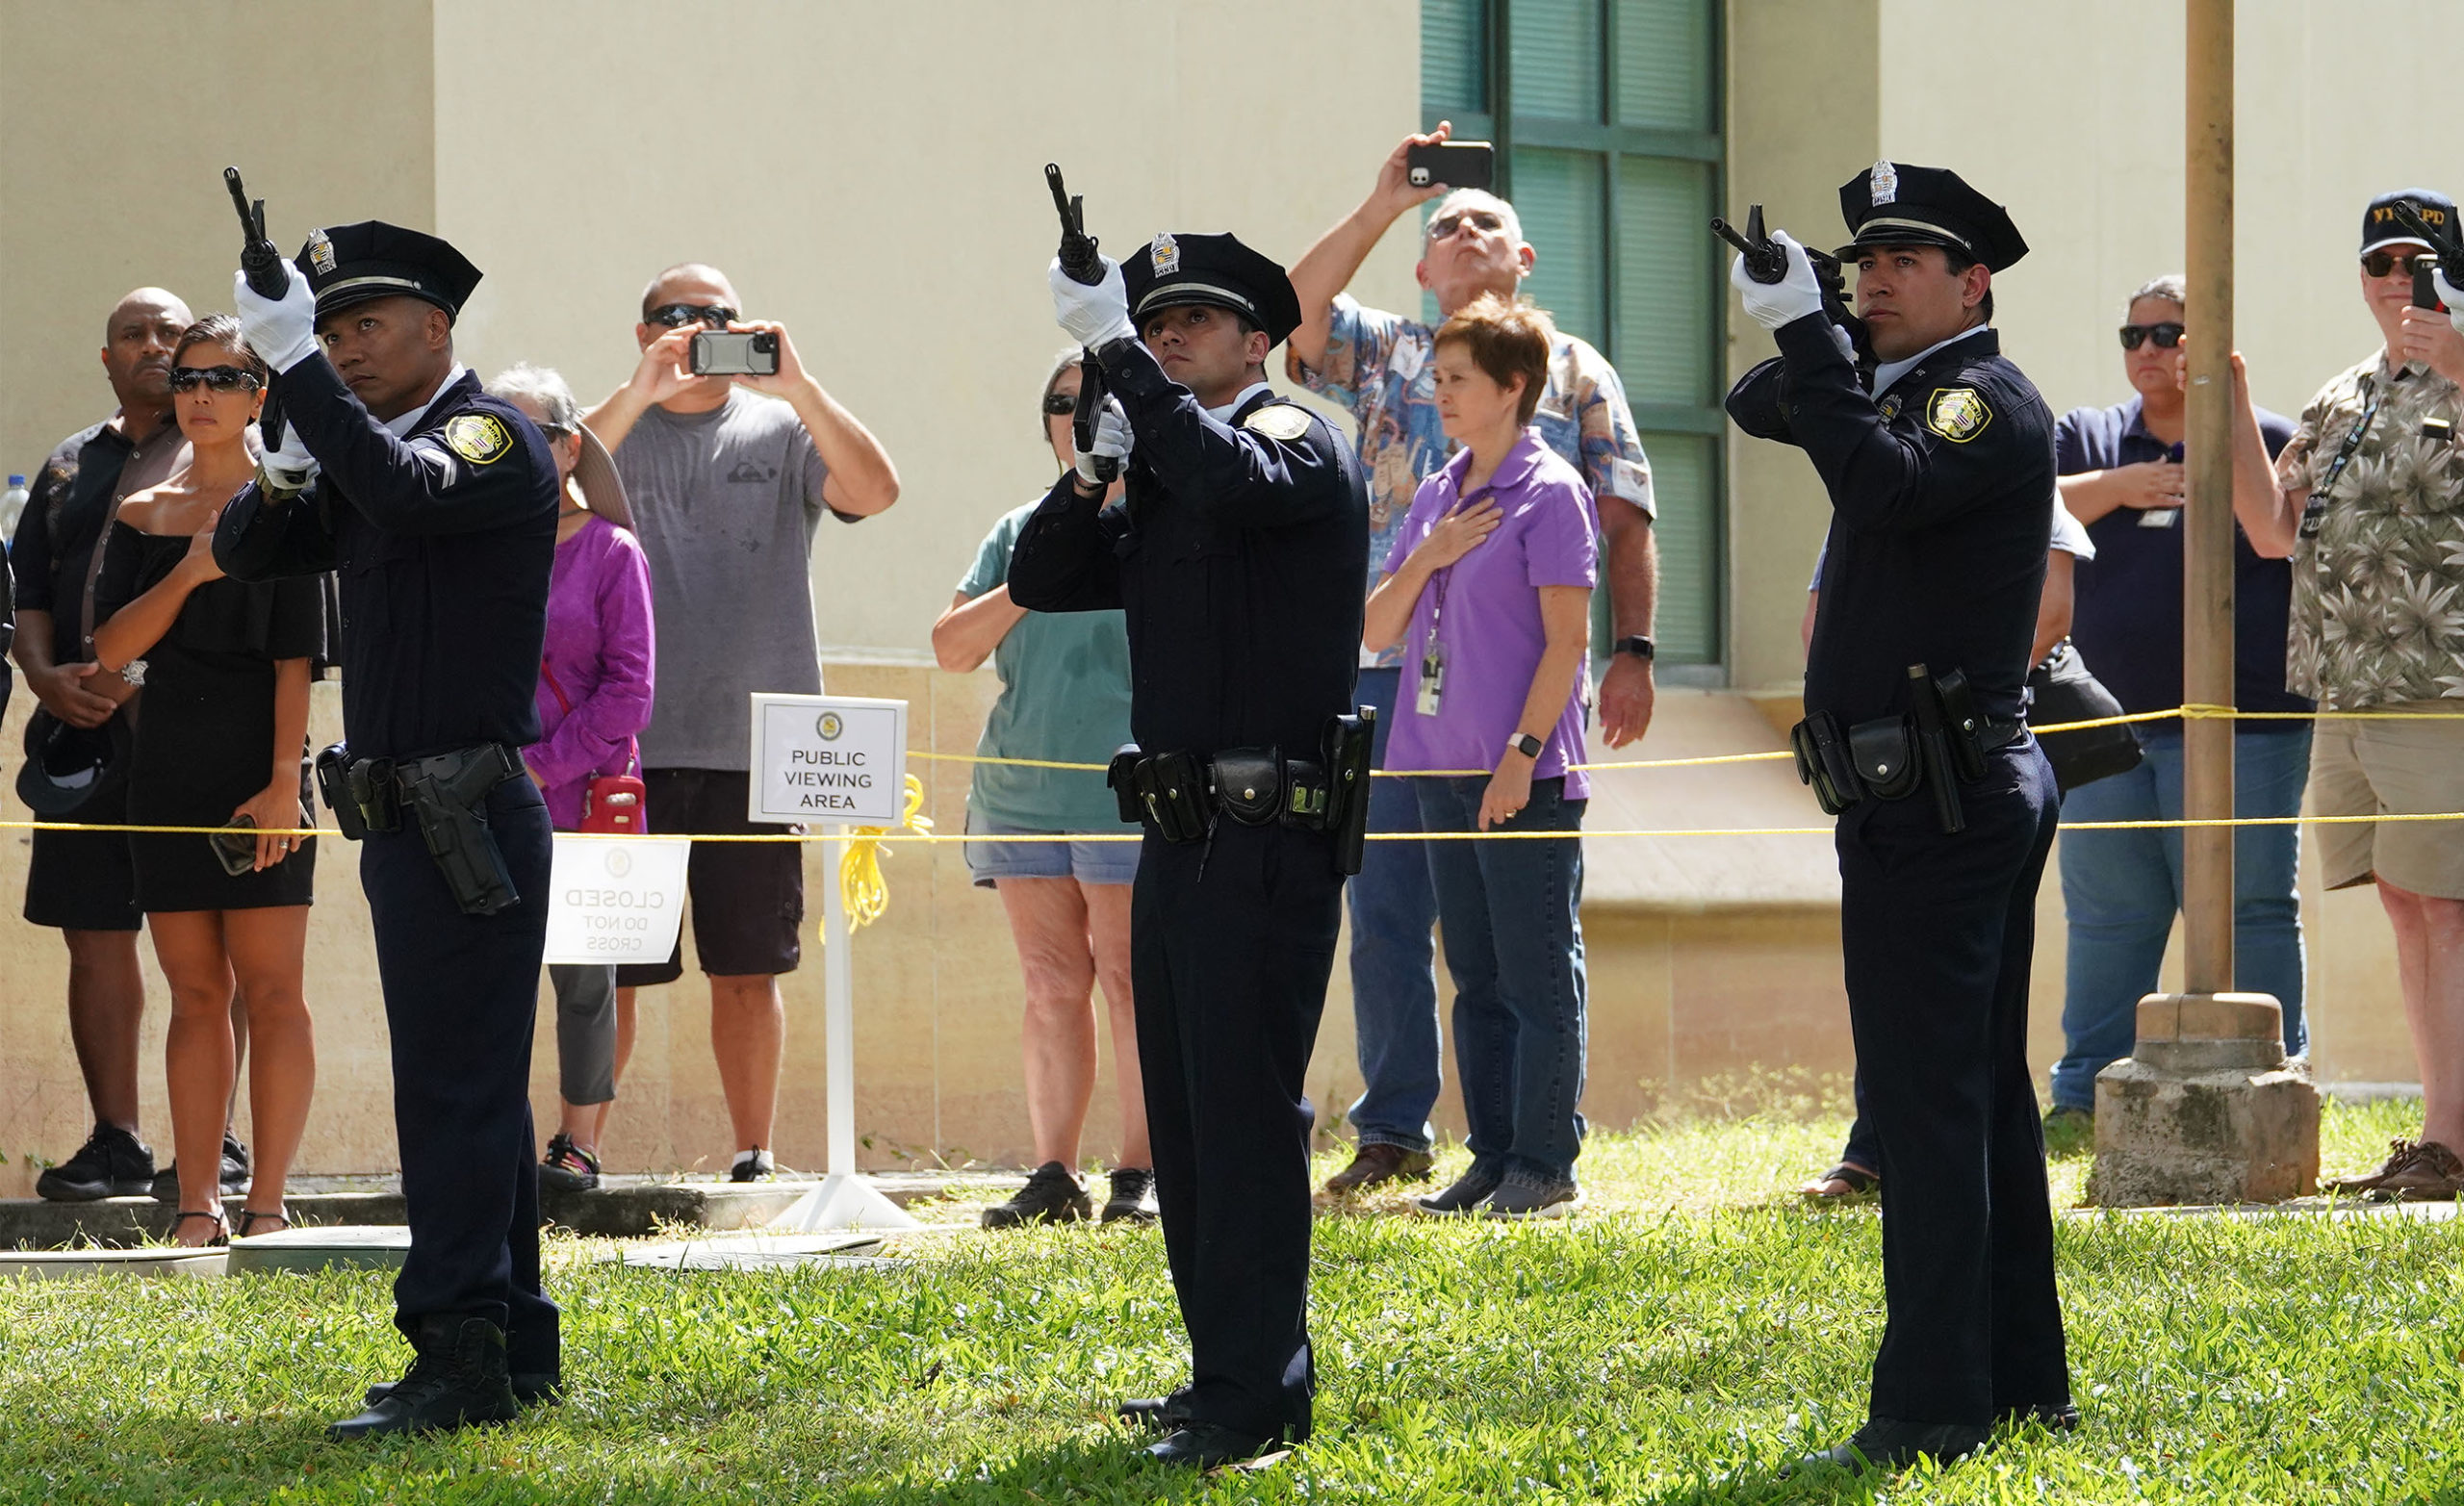 "<p>Honolulu police officers fired their rifles in remembrance of Officer Tiffany Enriquez, who was remembered as a ""special person"" by Malcolm Lutu, the president of State of Hawaii Organization for Police Officers. ""She'd light up the room,"" he added. Lutu served with her in the Waikiki district.</p>"